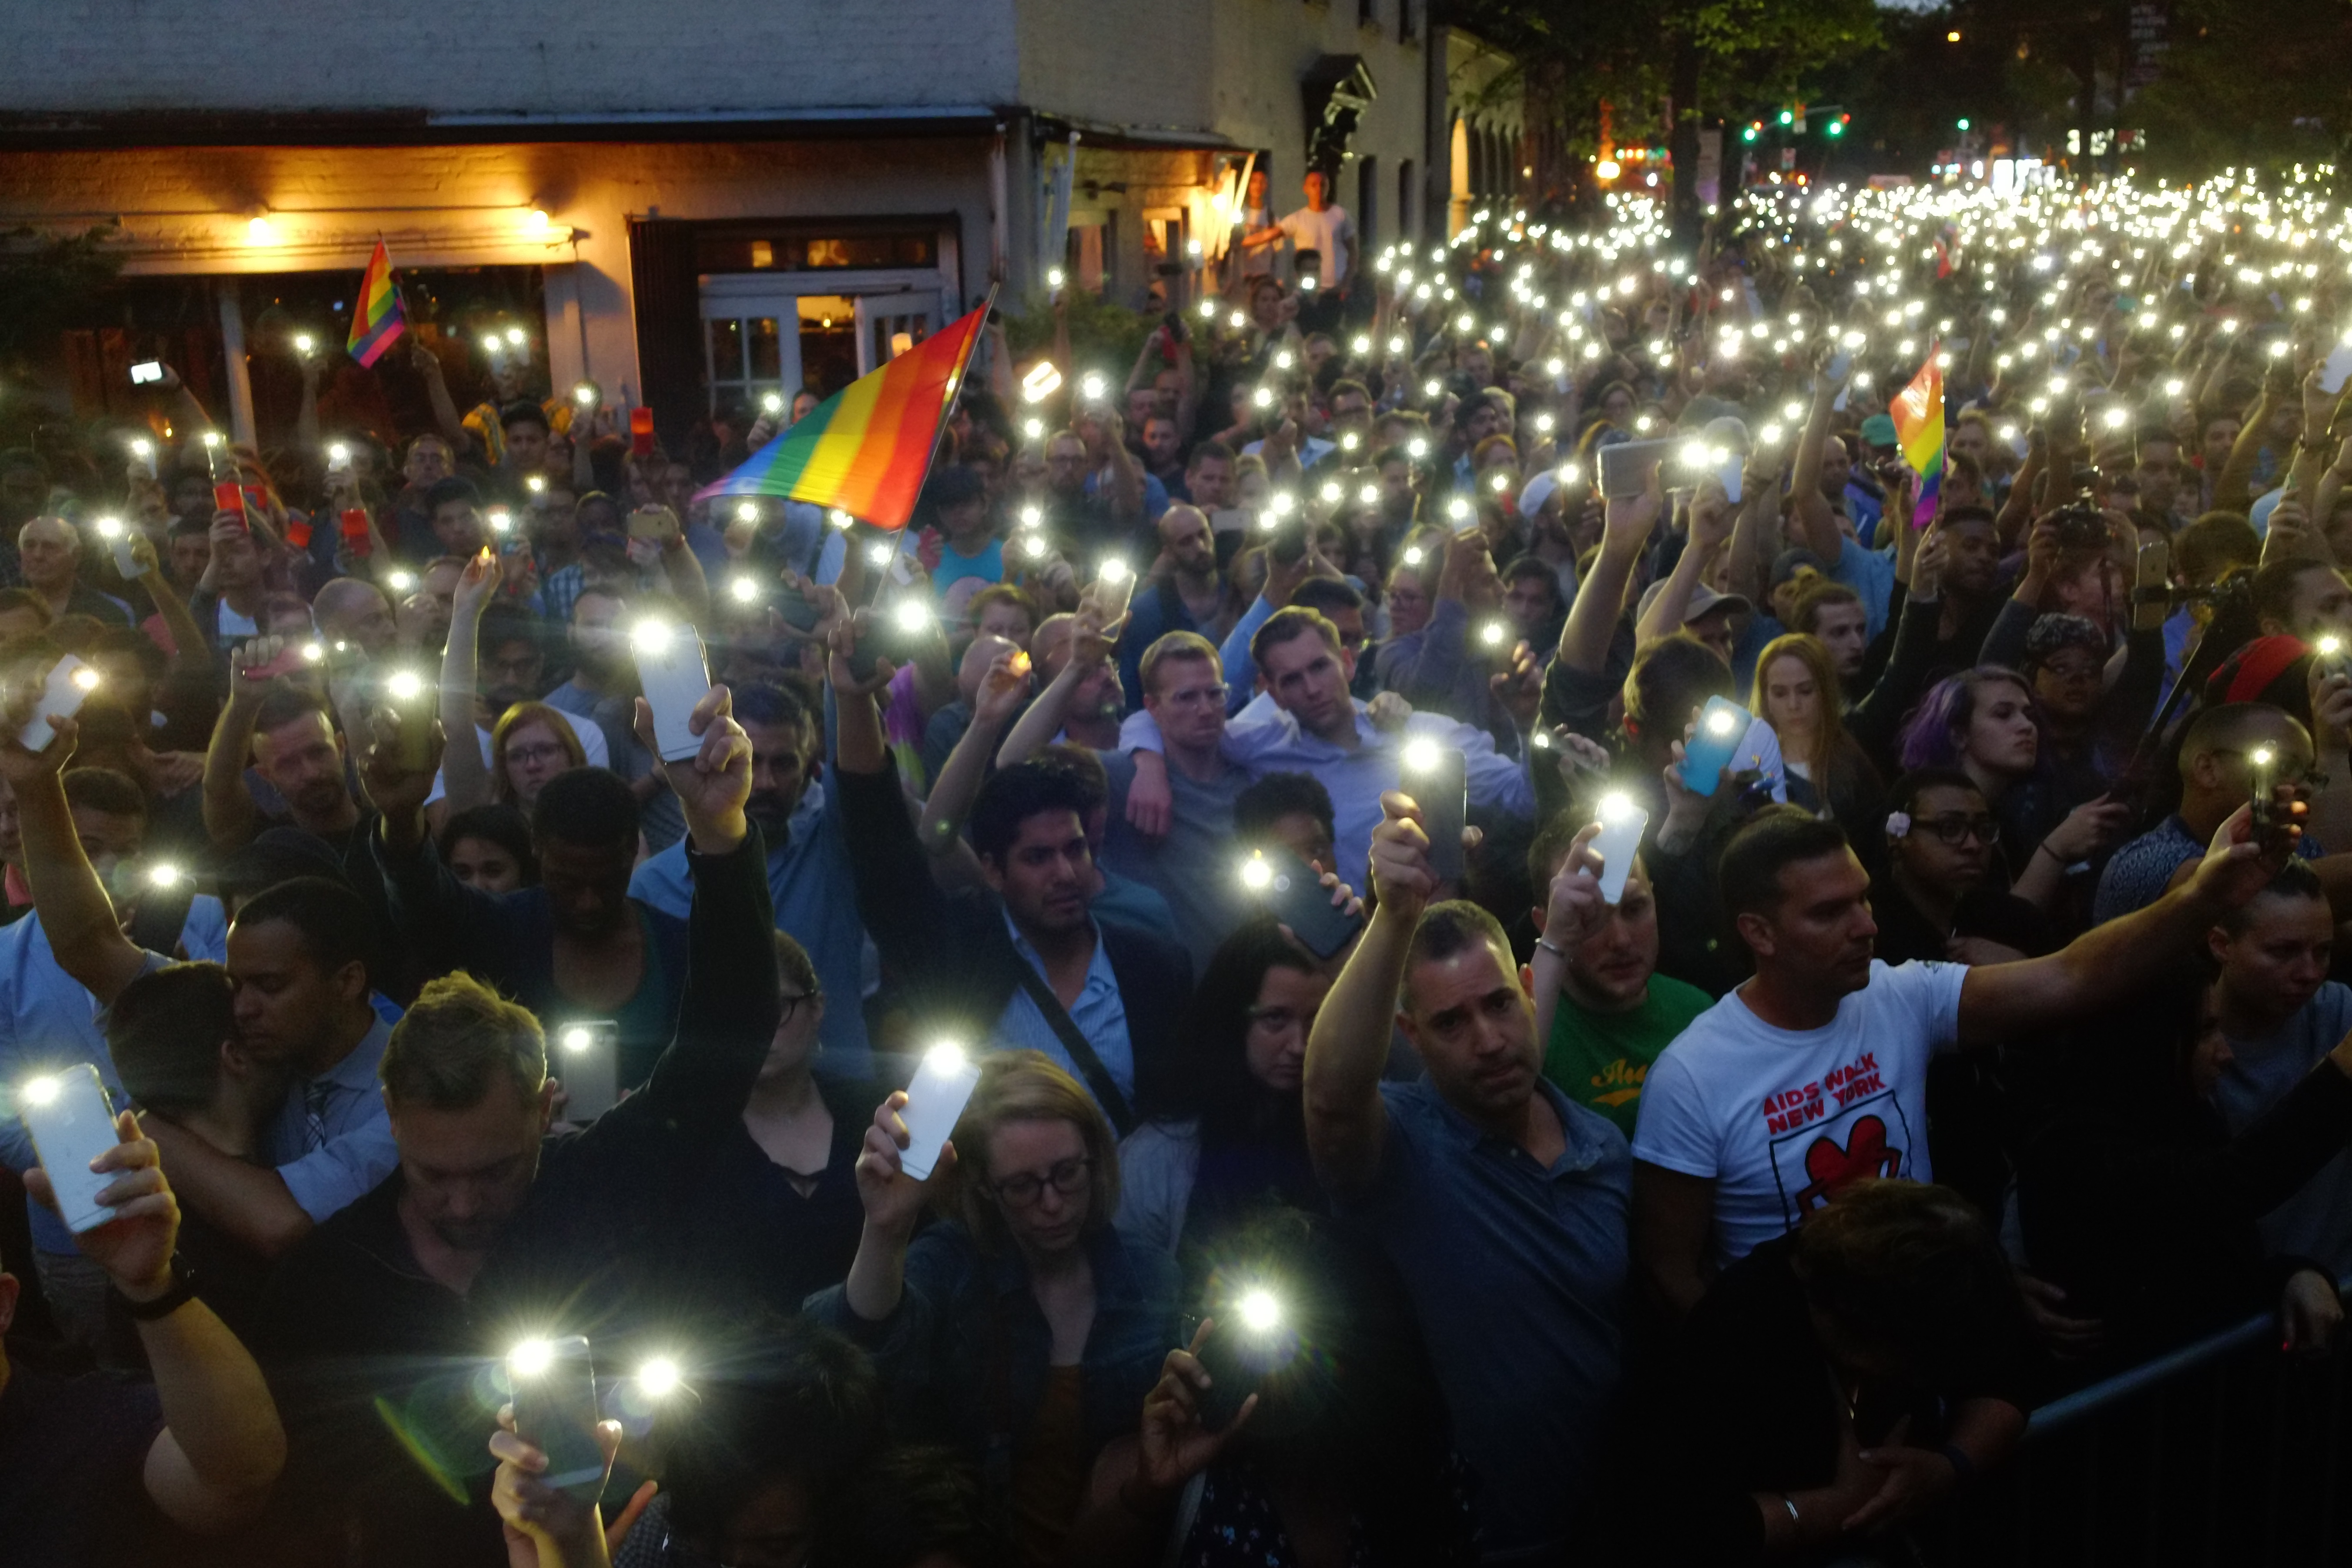 As the names of people killed at the Pulse nightclub were read outside the Stonewall Inn, people hold lights in honor of the victims.